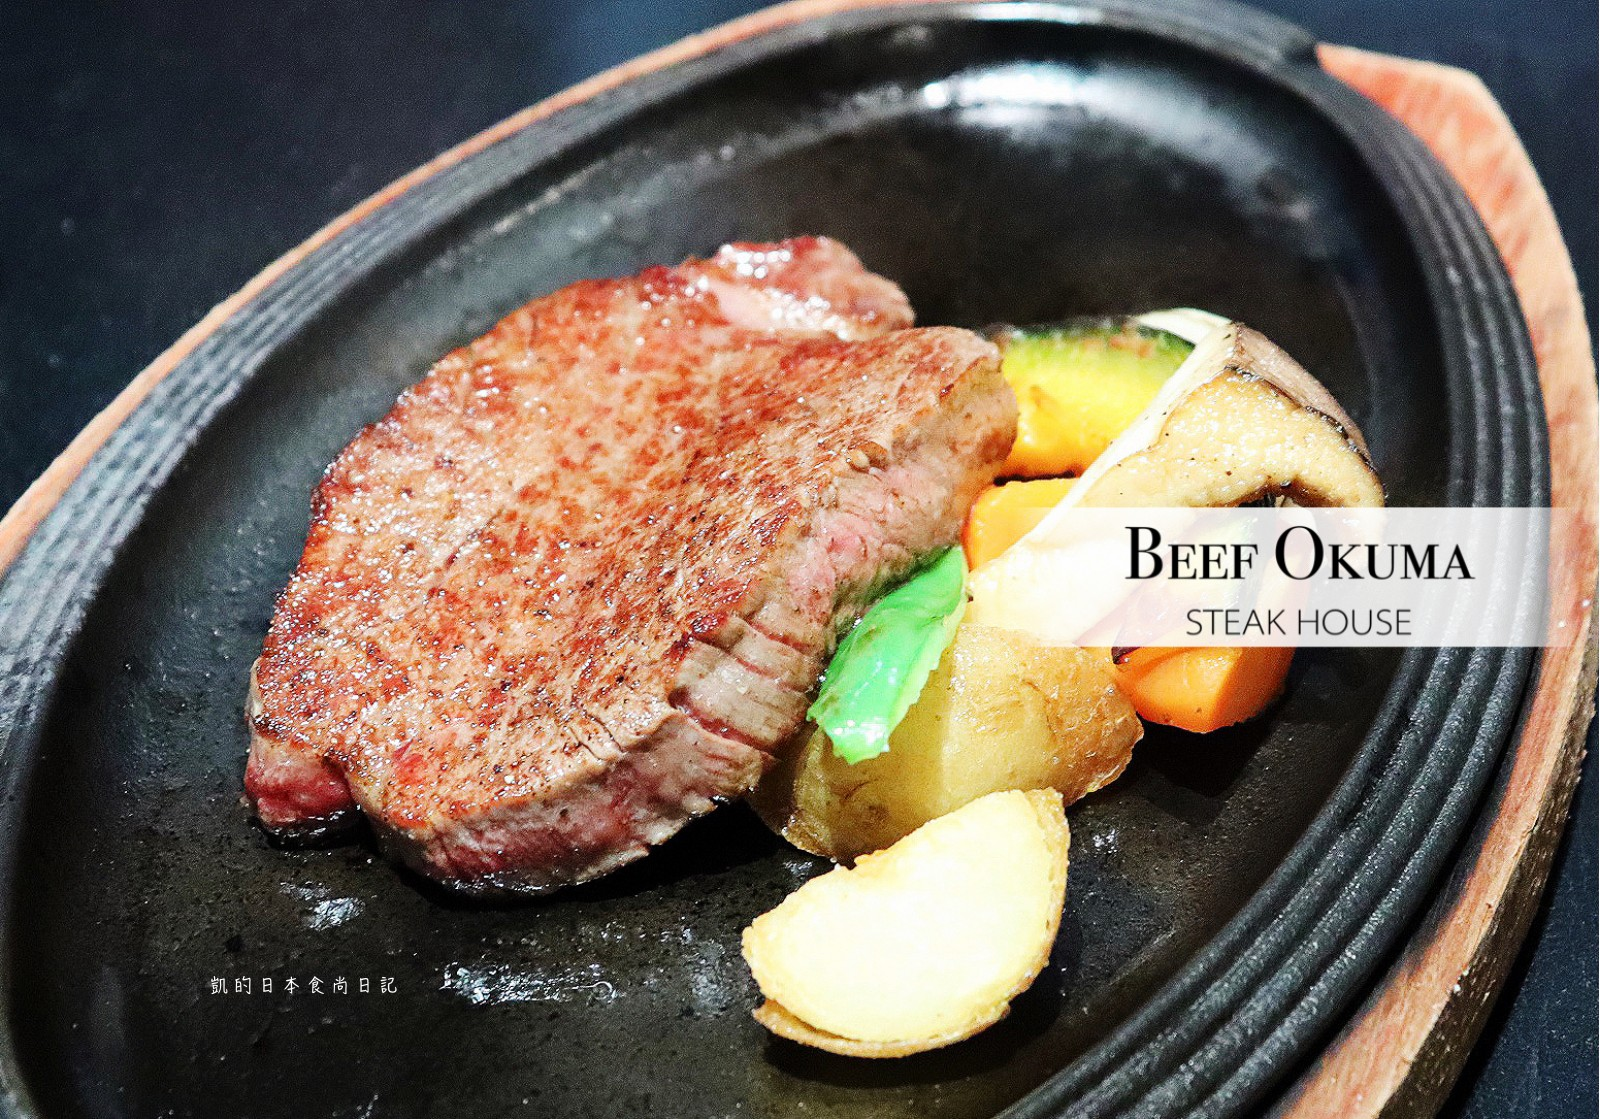 ☆【2019。名古屋】steak house Beef Okuma松坂屋名古屋本店。近江牛初體驗 @凱的日本食尚日記